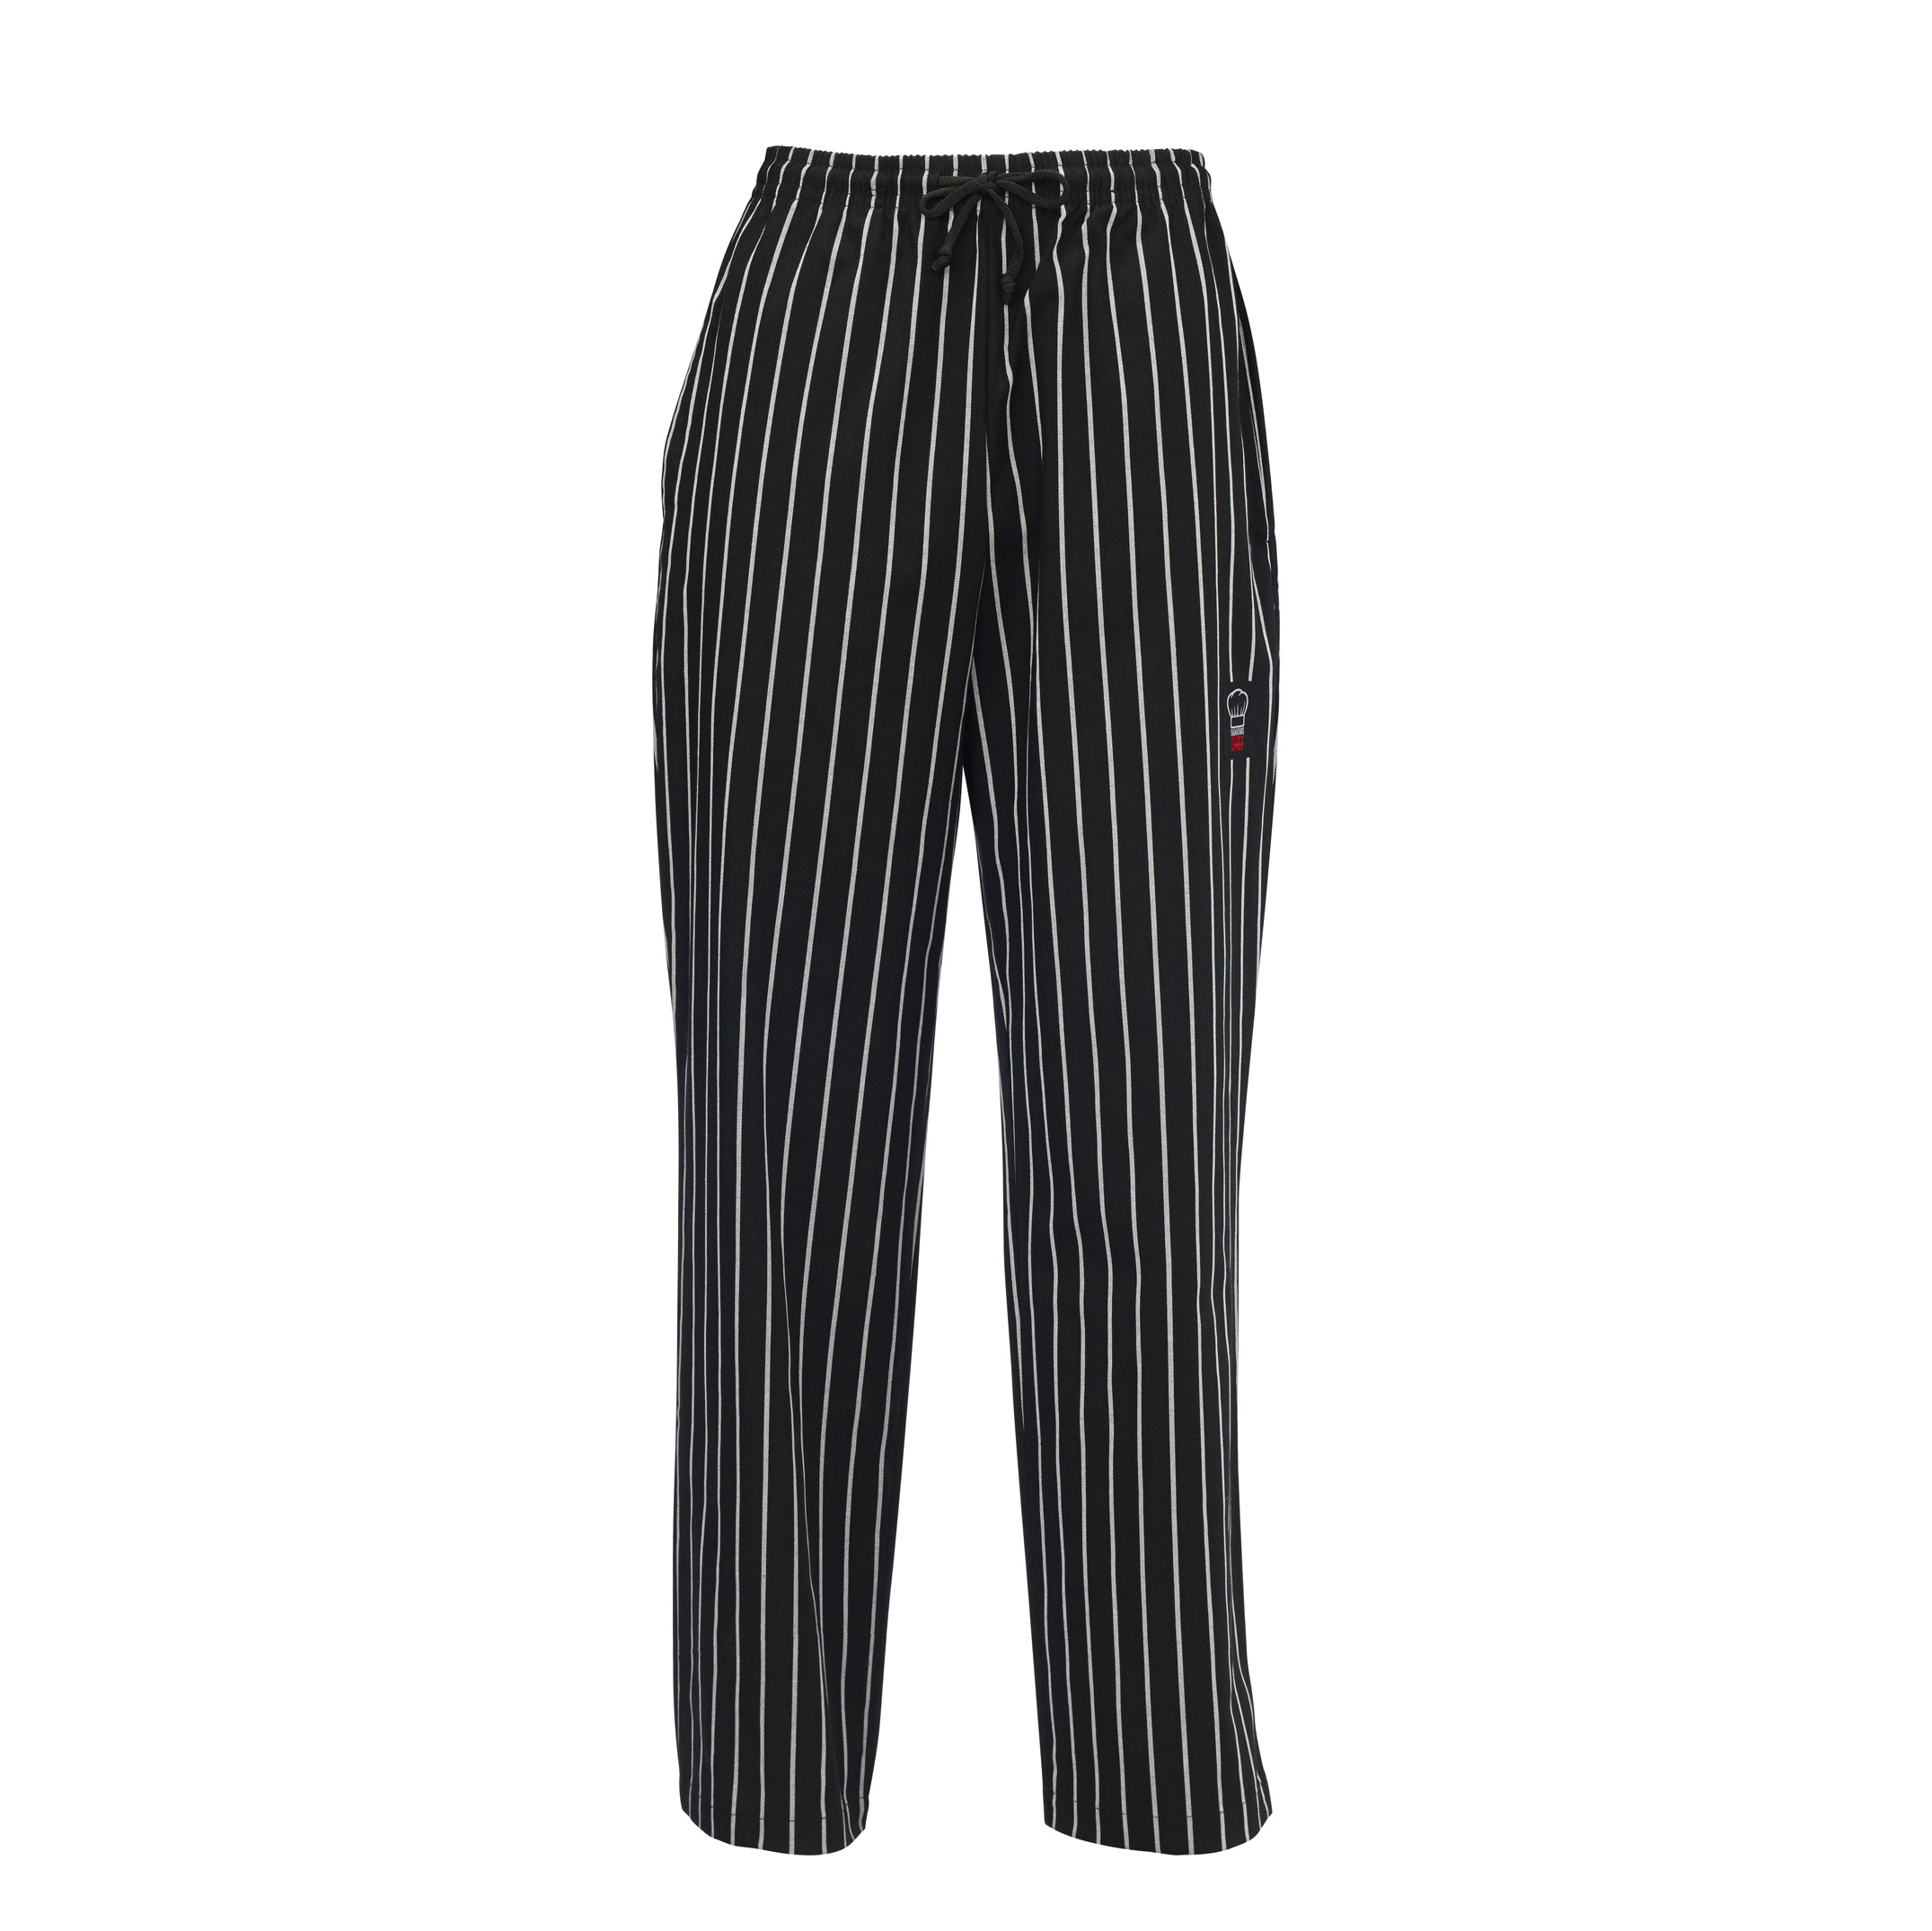 Winco UNF-3CM chef's pants